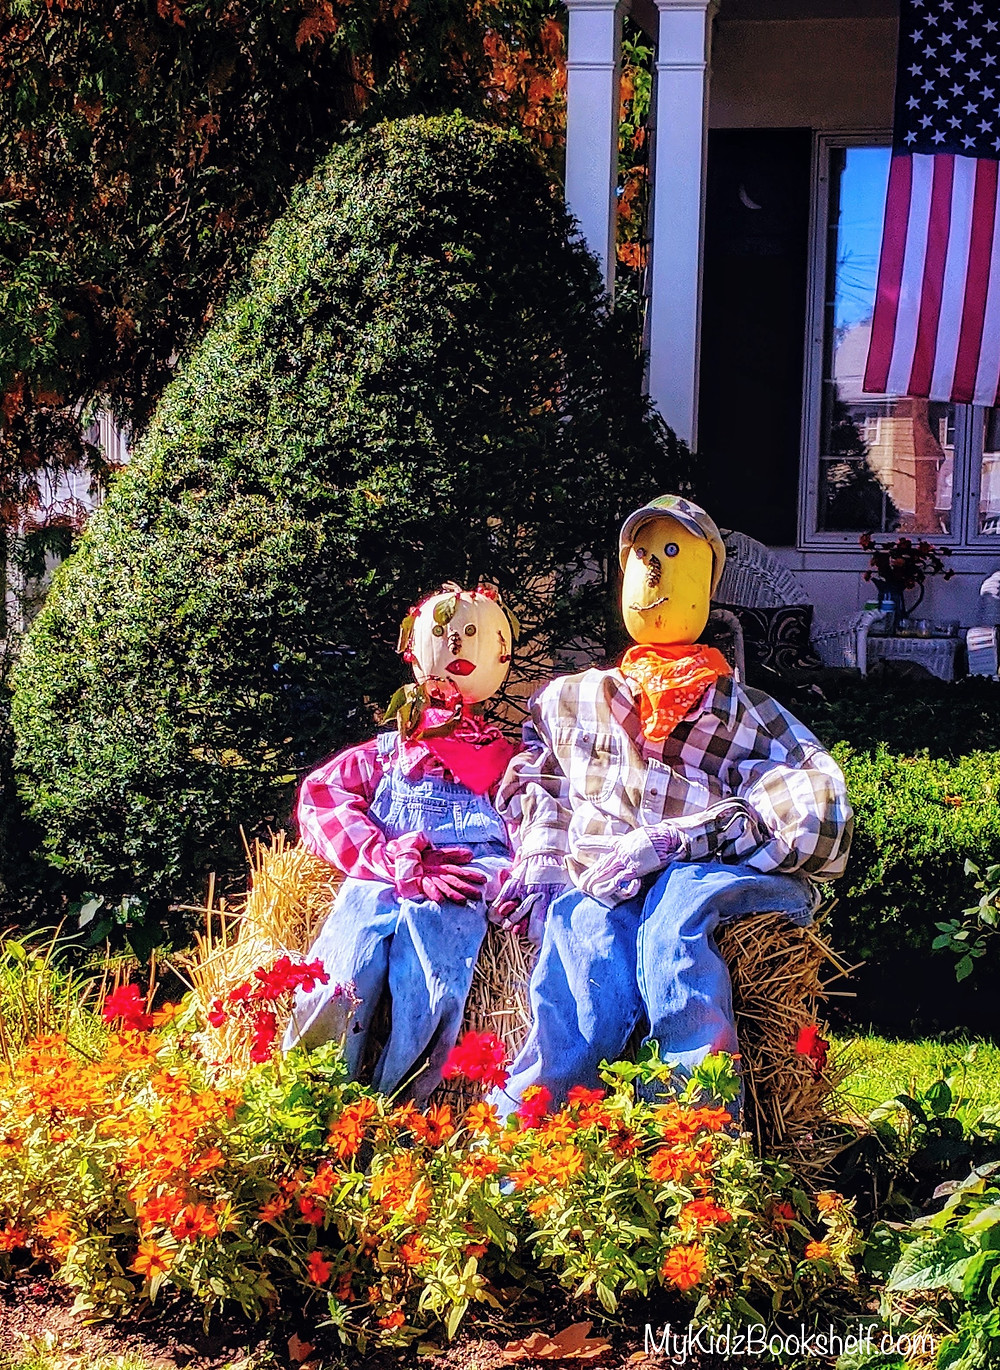 Scarecrows sitting in front of house